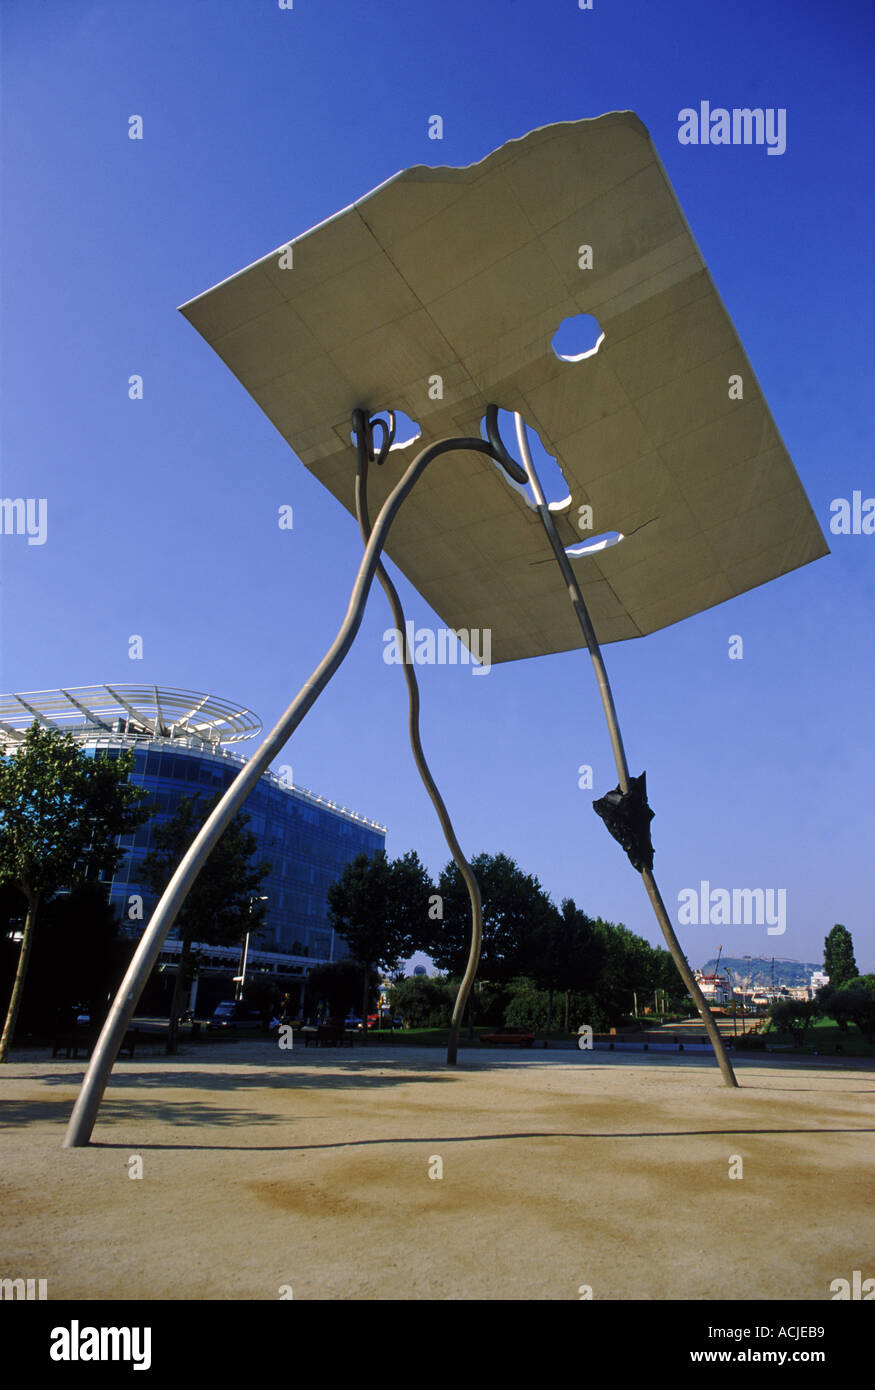 Sculpture monument to volunteers in Olympic village Barcelona Spain Europe - Stock Image